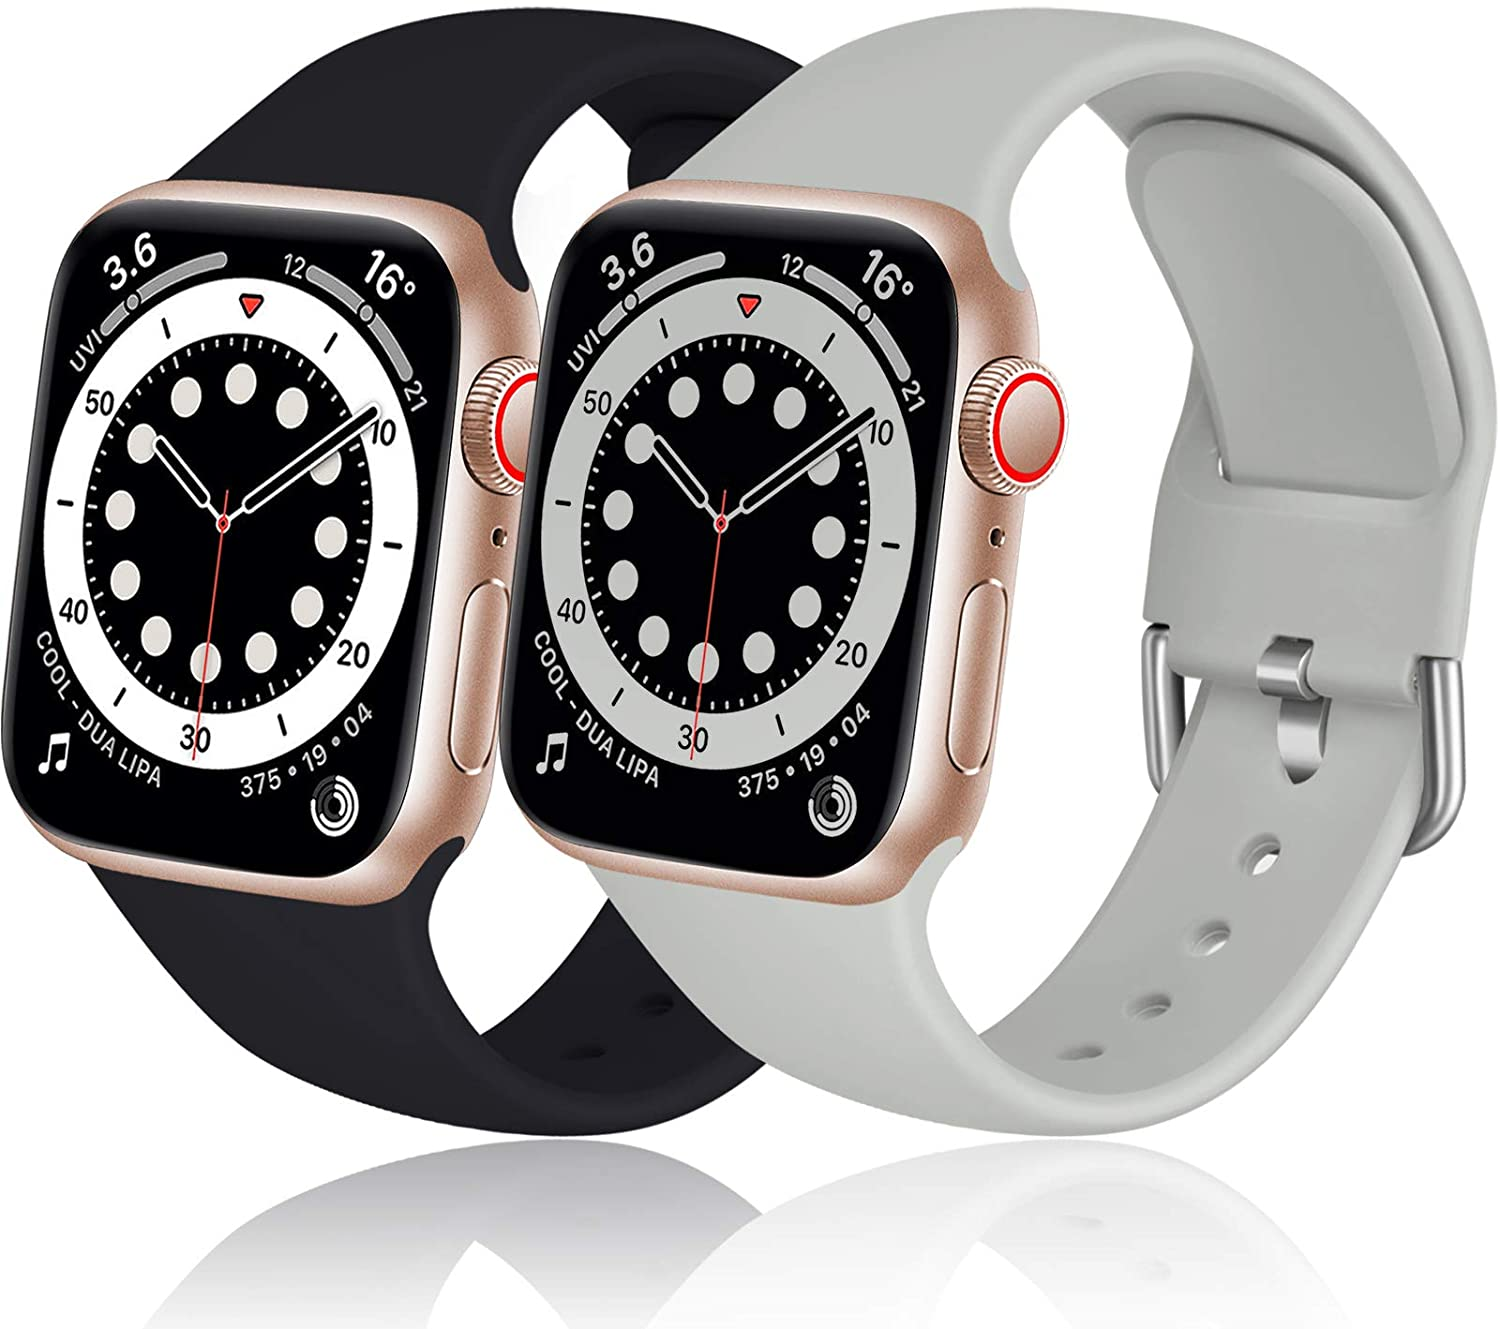 Dirrelo Compatible for Apple Watch Bands Strap 40mm 38mm Series SE 6 5 4 3 2 1, Thin Silicone Replacement Sport Wrist Band for iwatch Band Women Men, Large Black & Gray 2-Pack